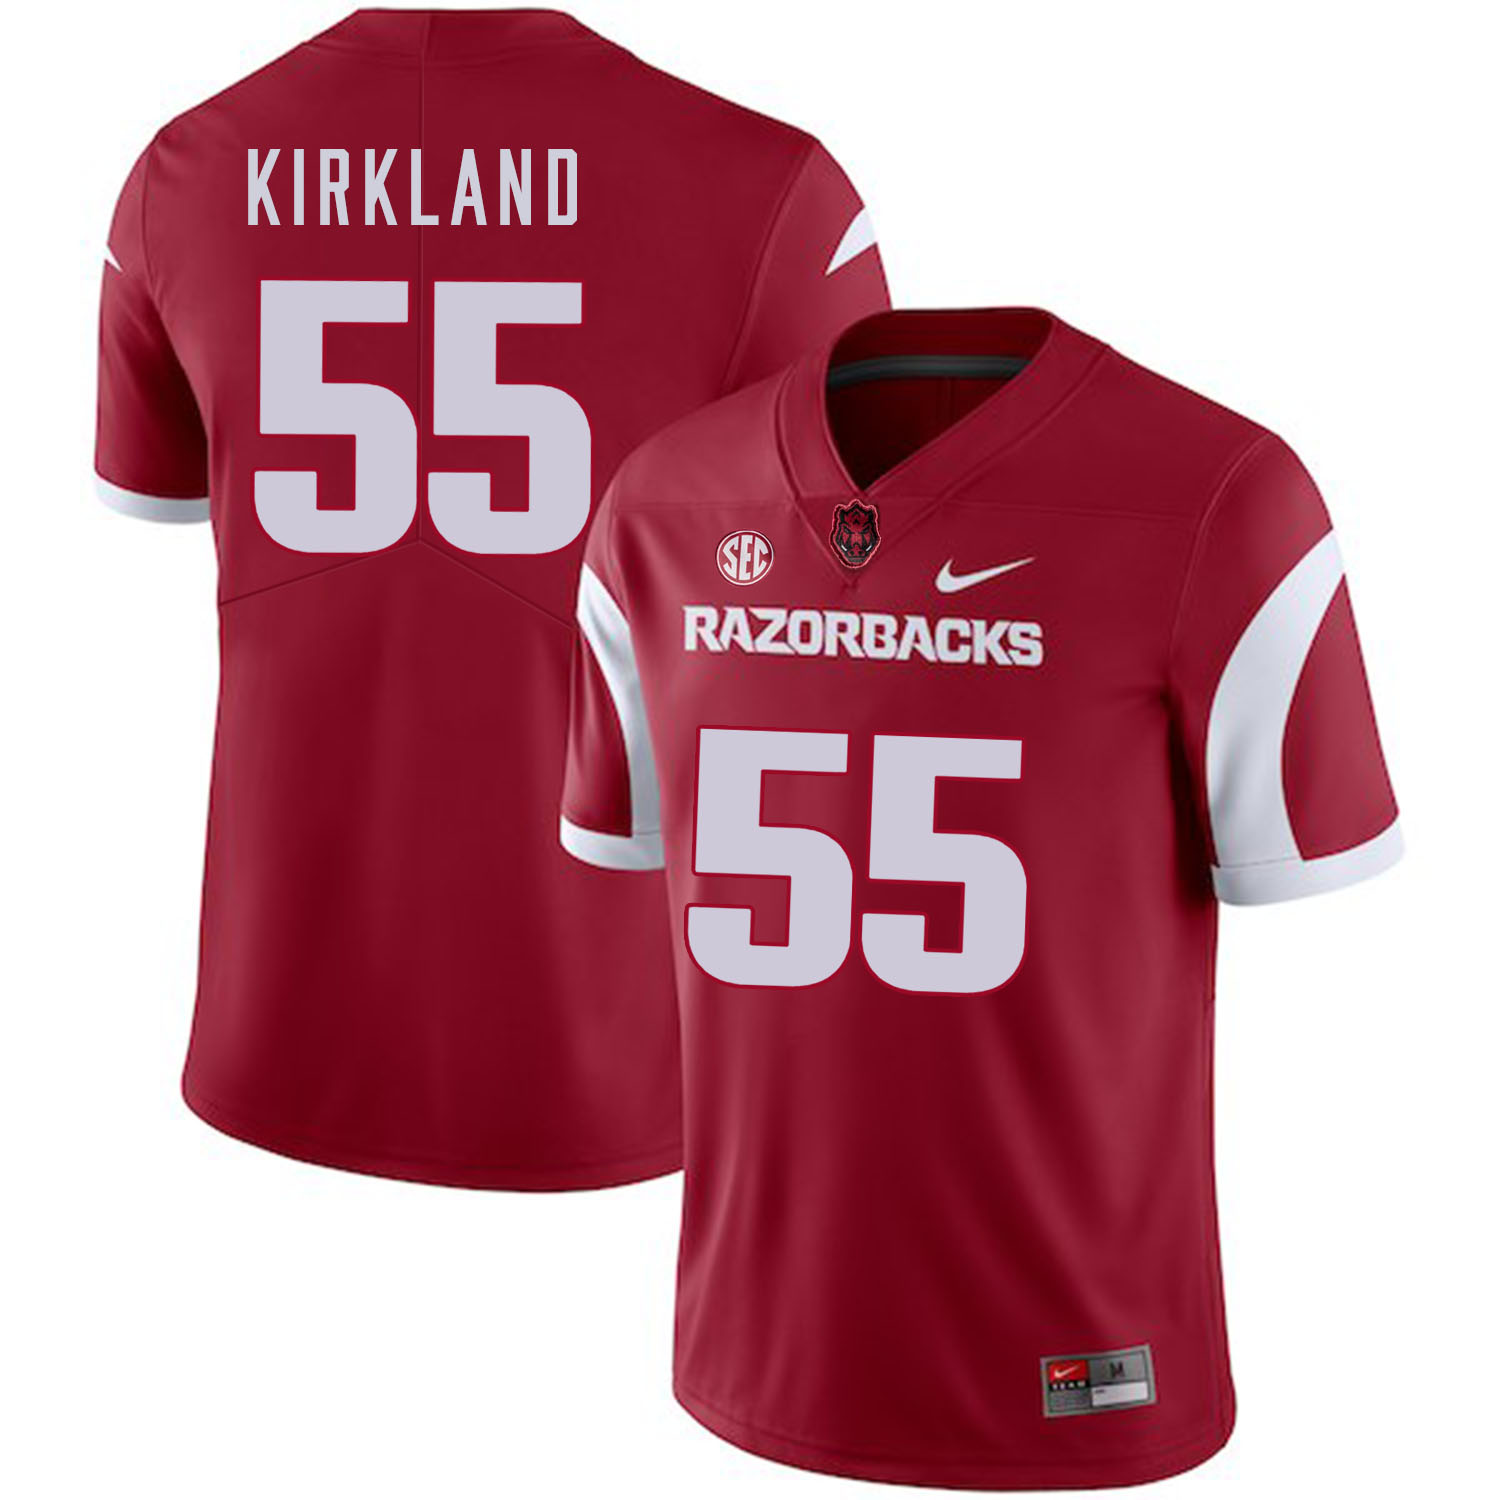 Arkansas Razorbacks 55 Denver Kirkland Red College Football Jersey